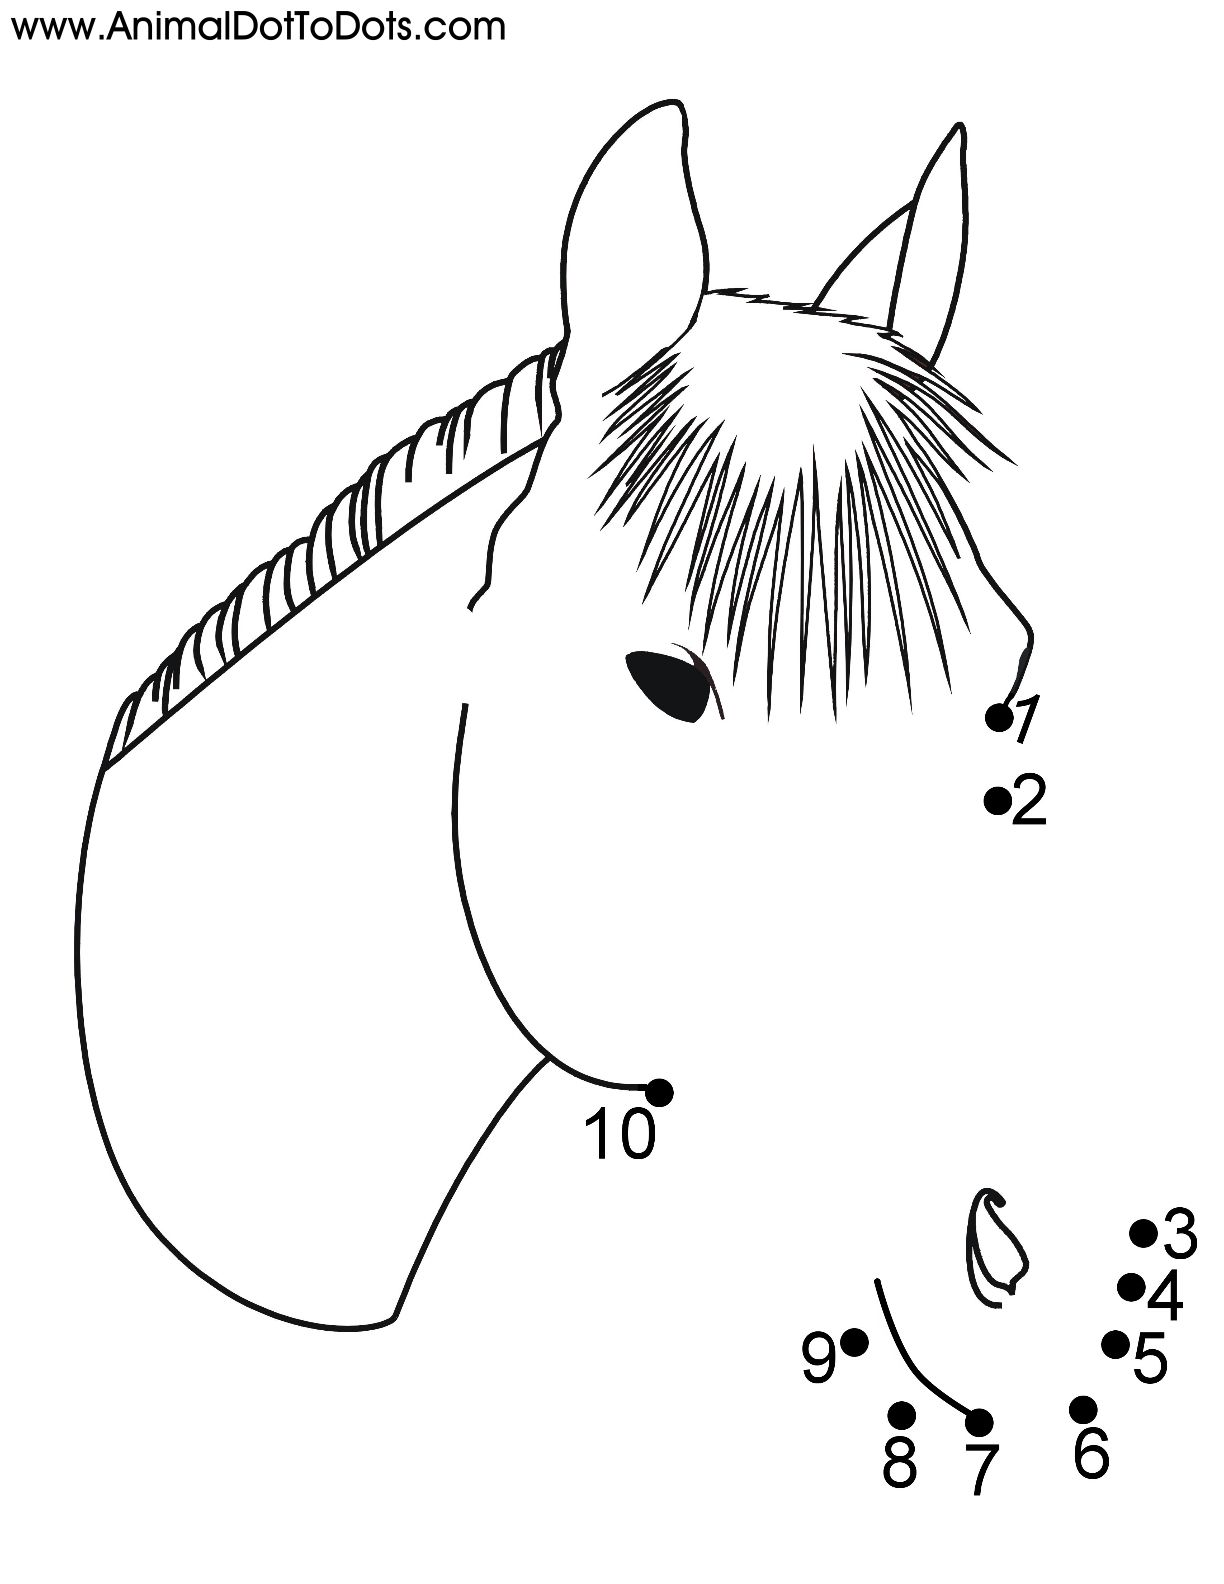 Free Printable Animal Dot To Dot Horse